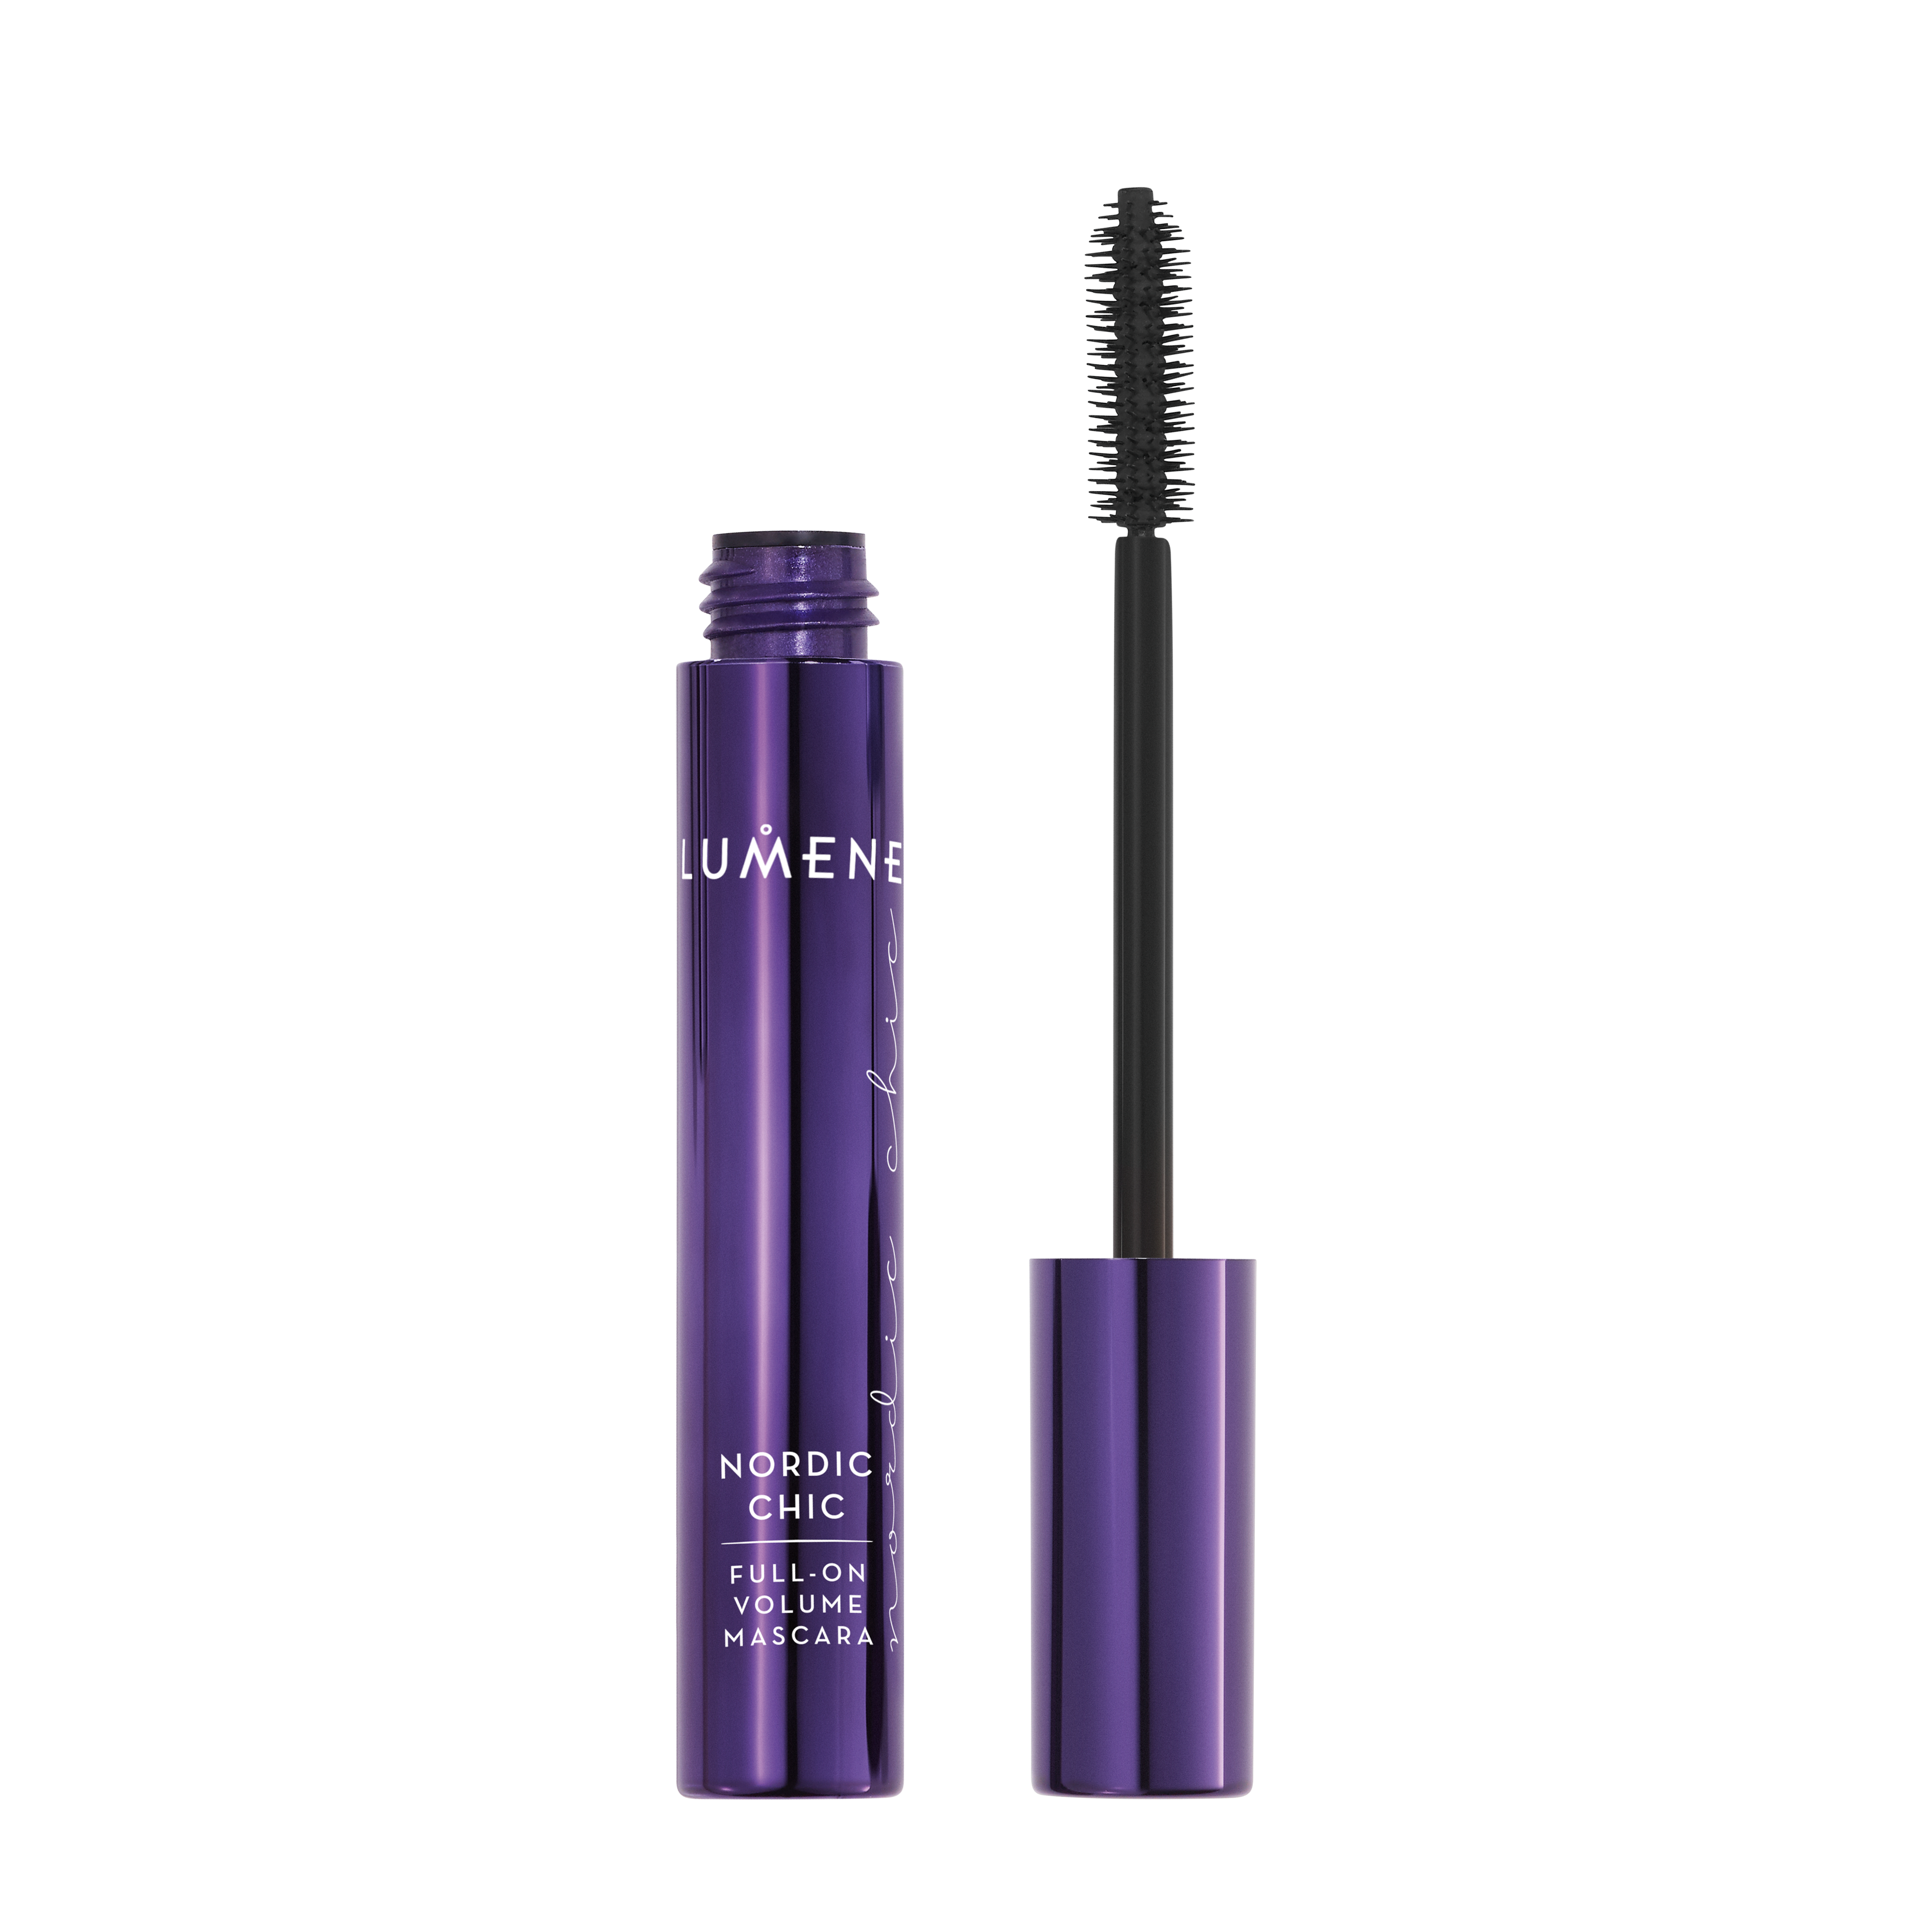 Nordic Chic Full-on Volume Mascara Deep Brown